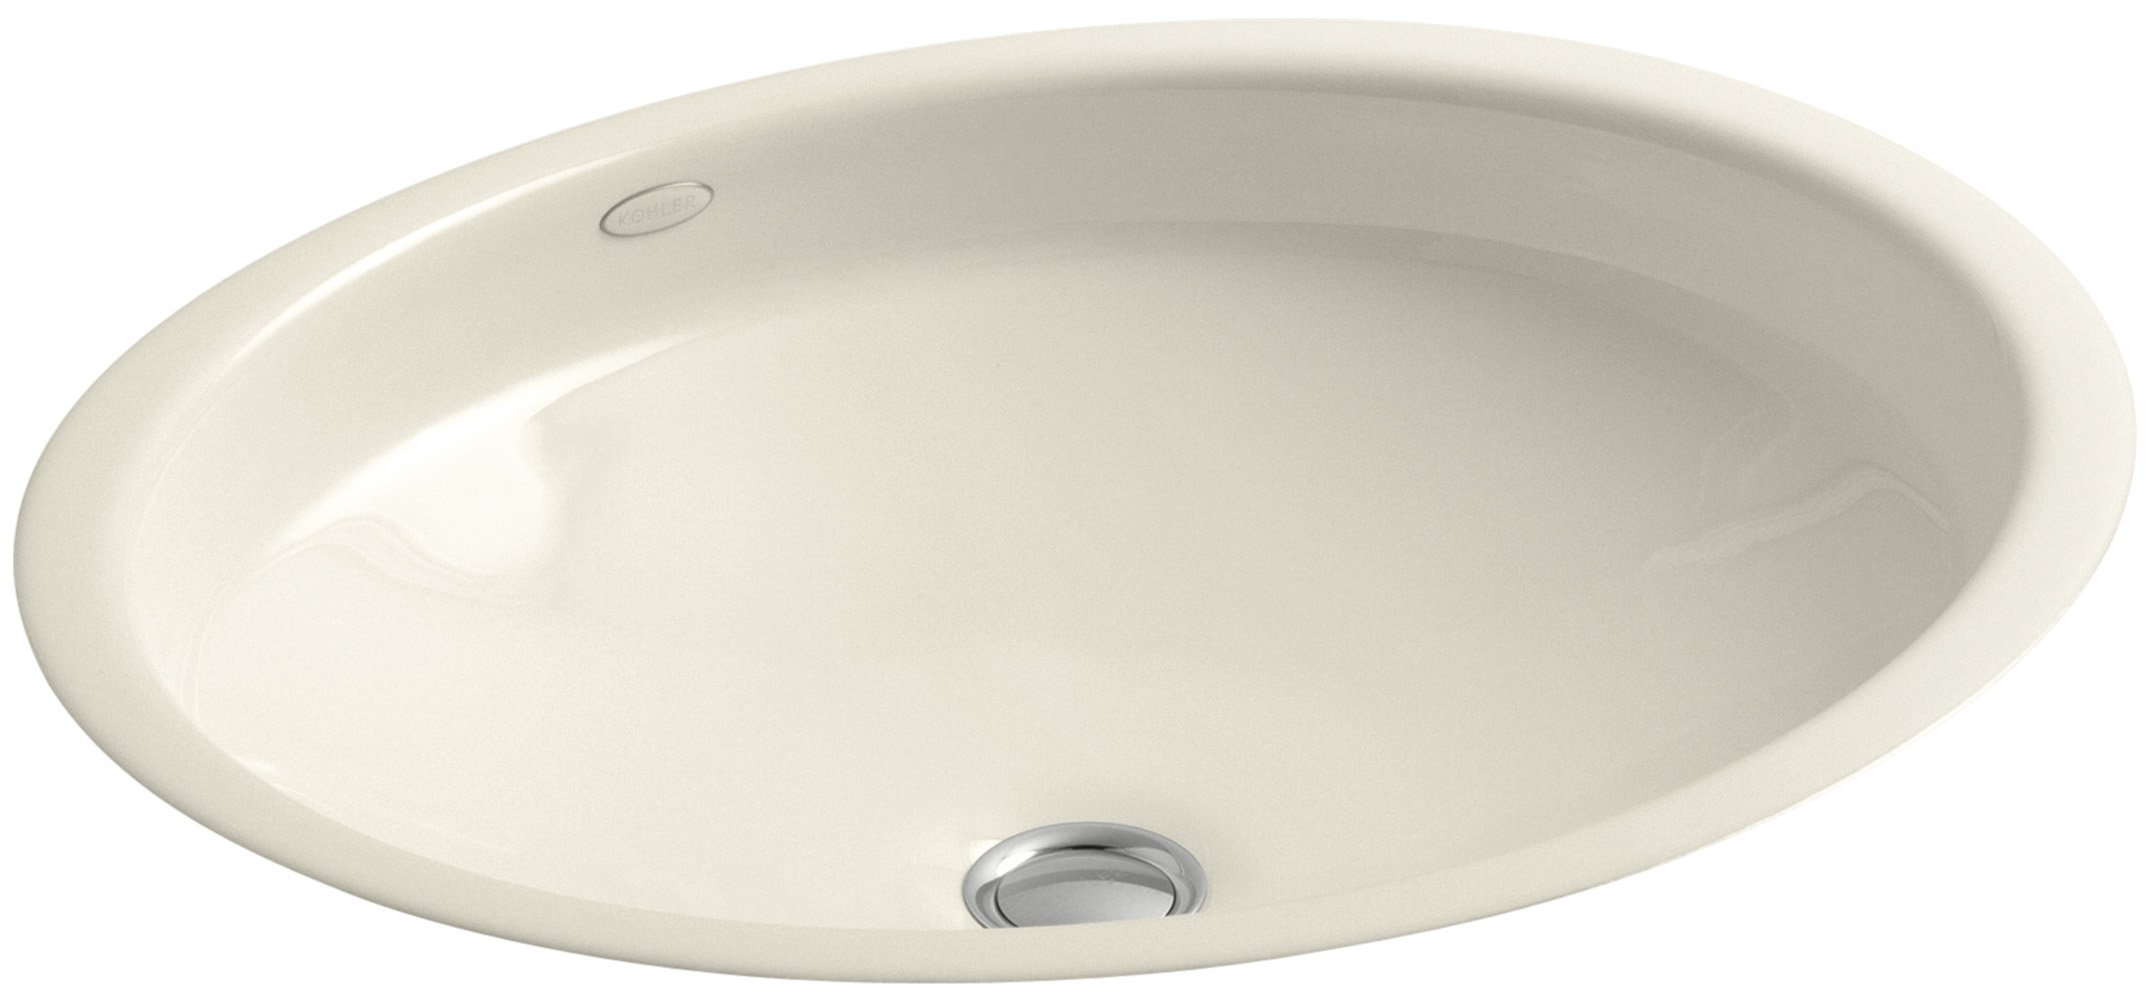 KOHLER K-2874-47 Canvas Cast Iron Bathroom Sink, Almond by Kohler